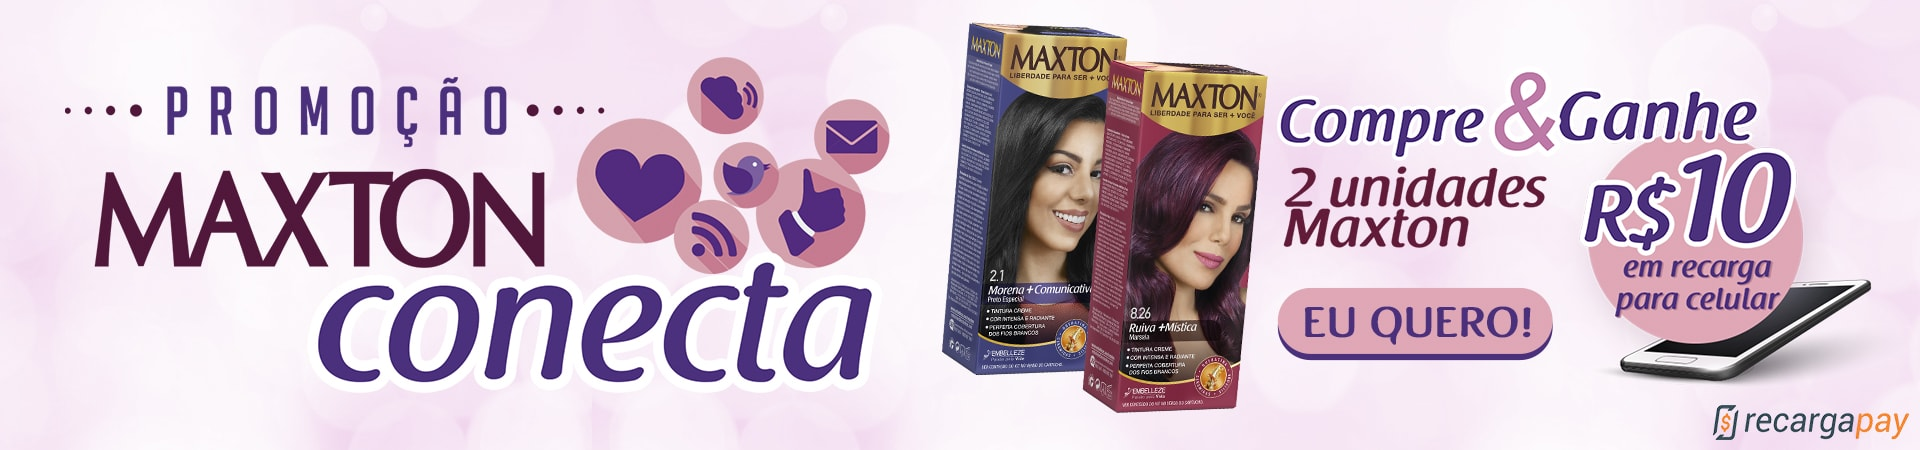 Fullbanner Maxton Conecta Desktop Home